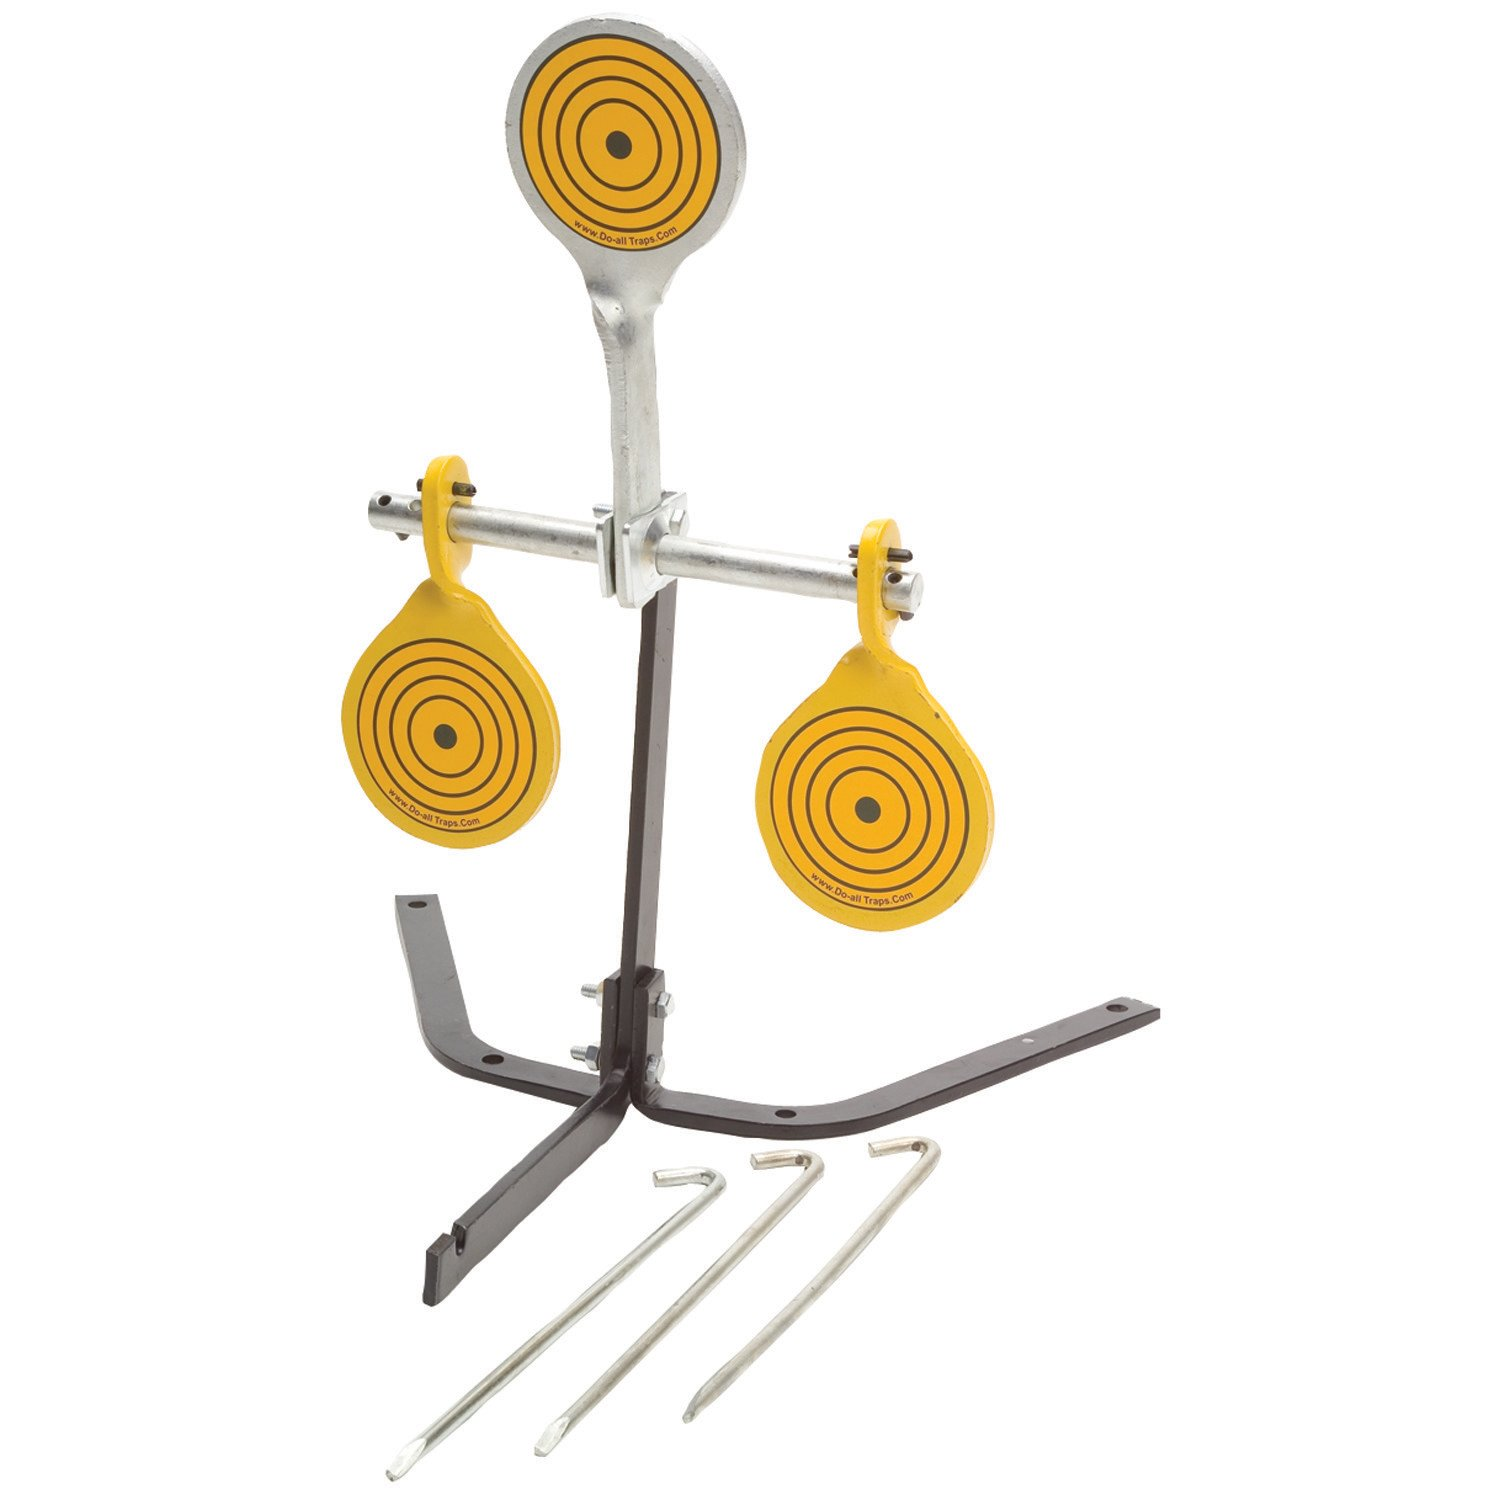 Do-All Outdoors .38 - .44 Caliber Auto Reset Spinning Target